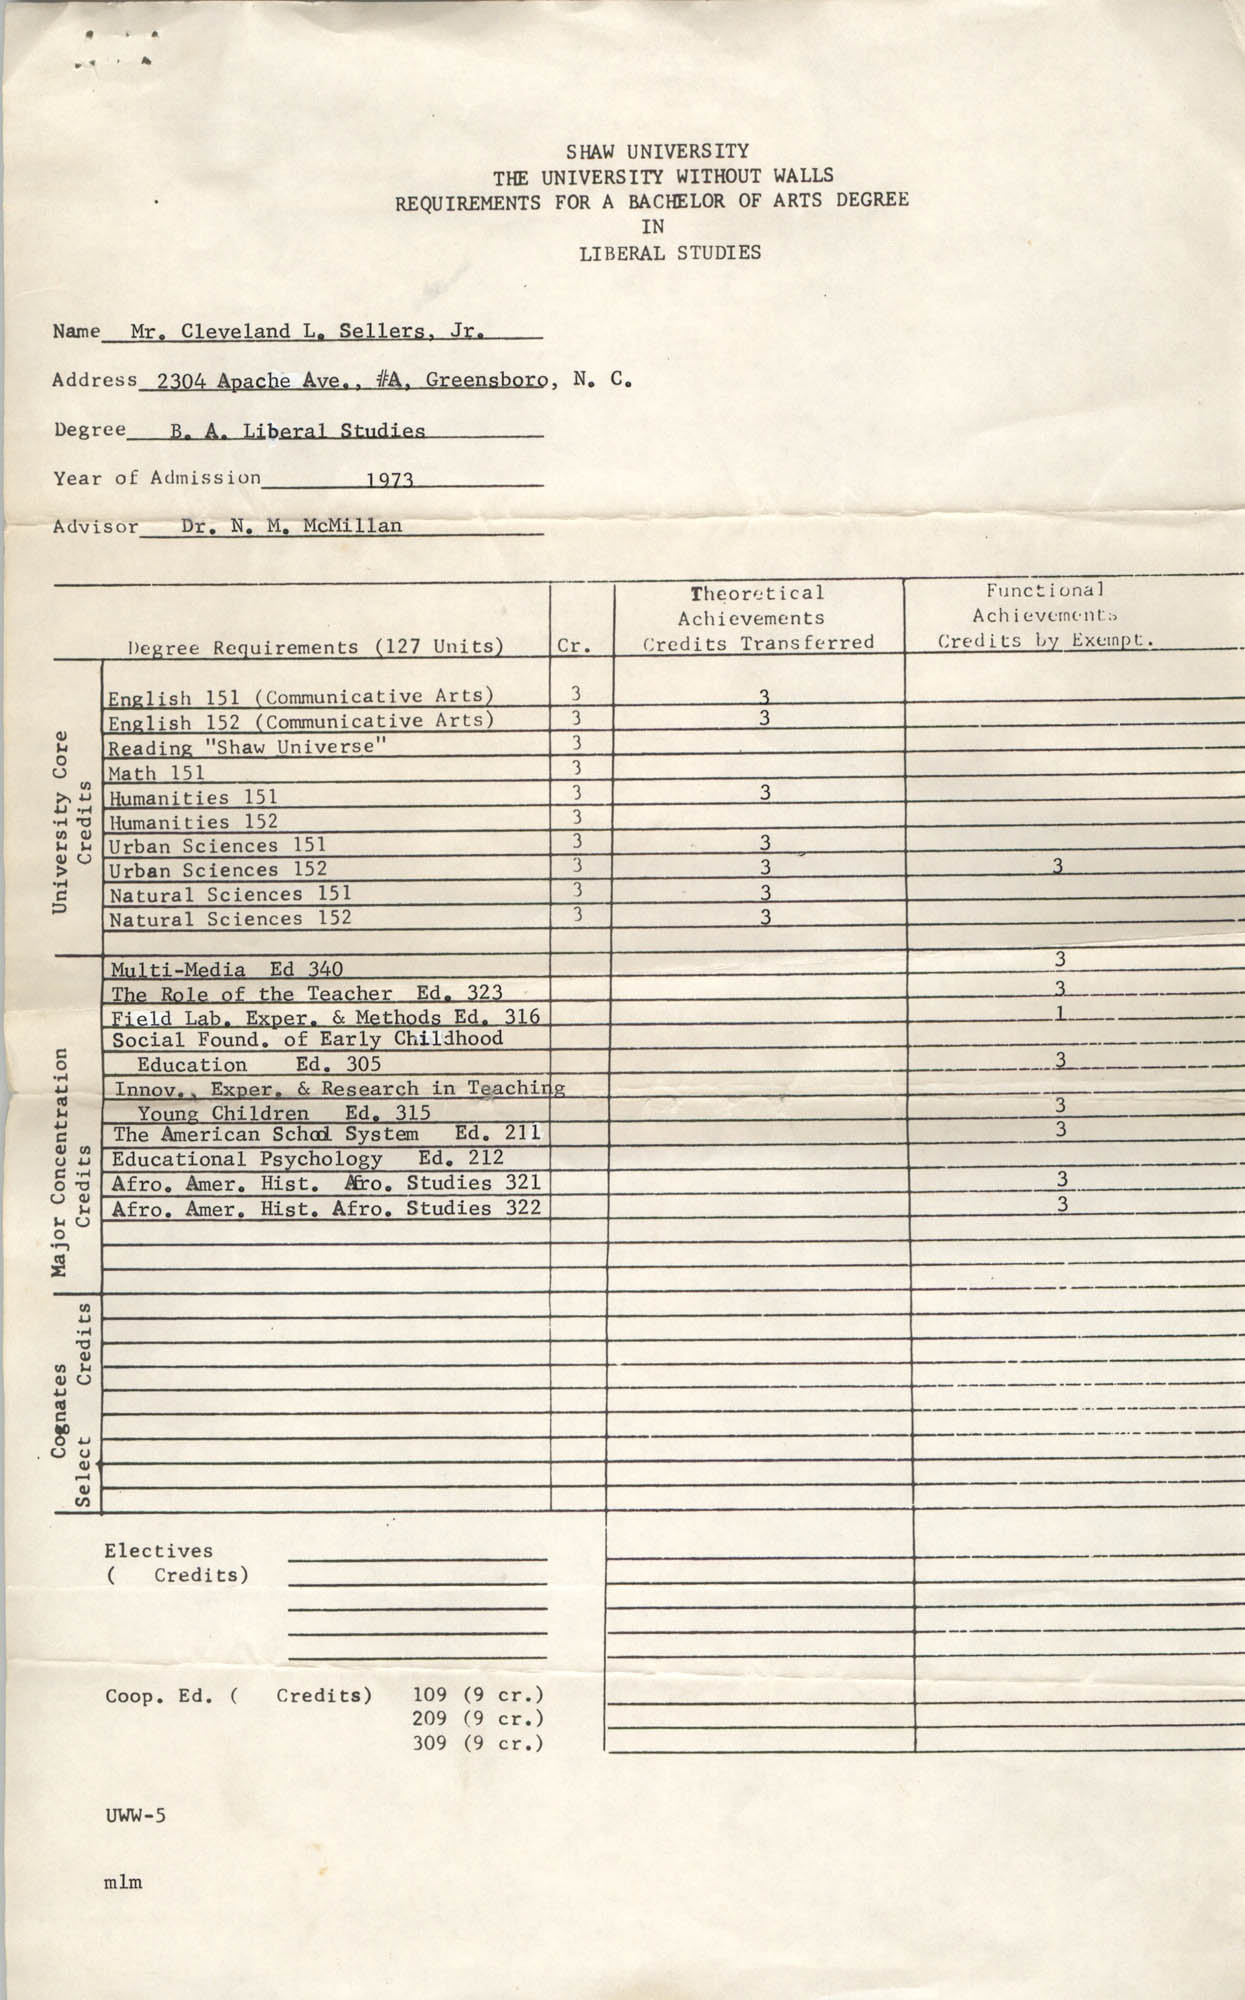 Cleveland Sellers' Shaw University Courses and Credits, 1973